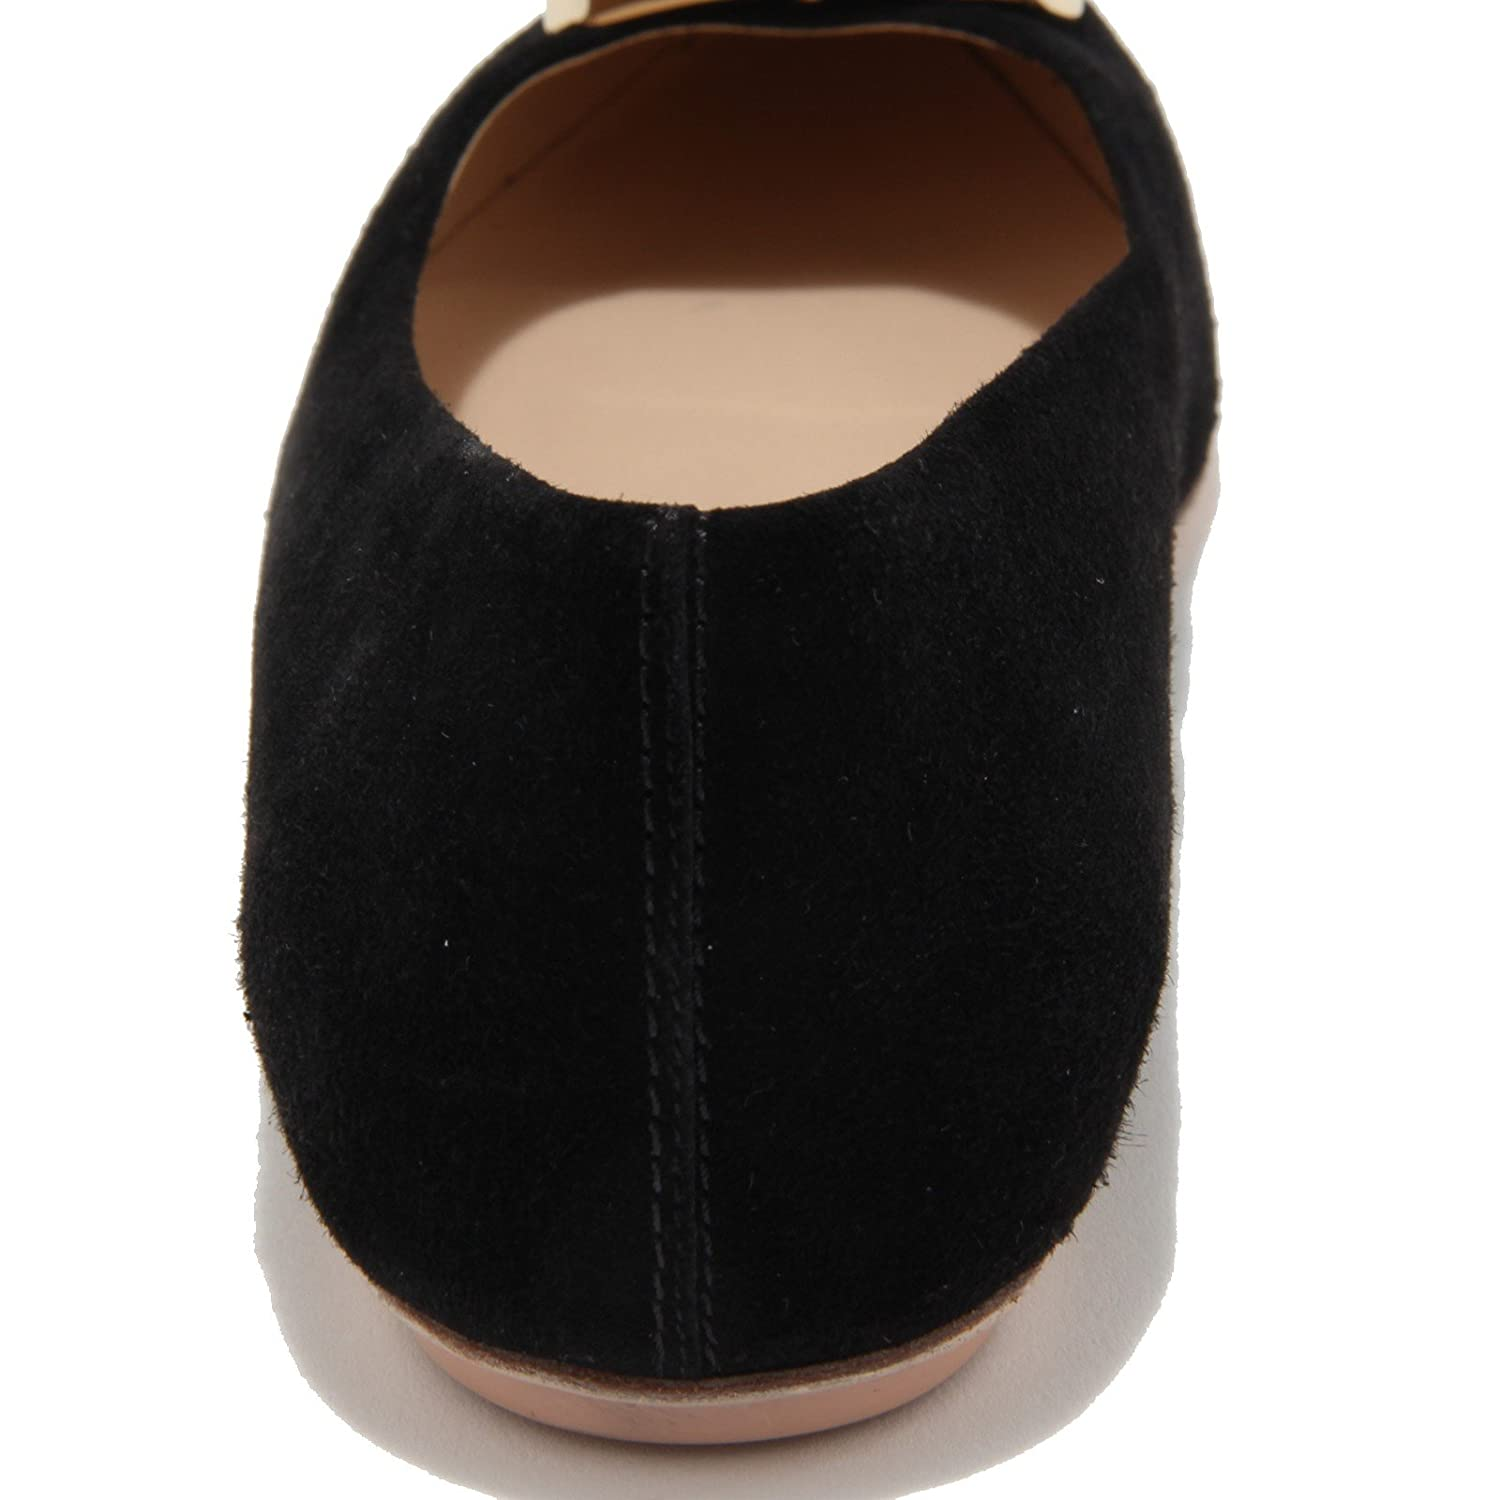 94173 ballerina TOD'S TOD'S TOD'S CUOIO SR PLACCA RIGING Negro Zapatos Mujer Zapatos Mujer 16f6ef